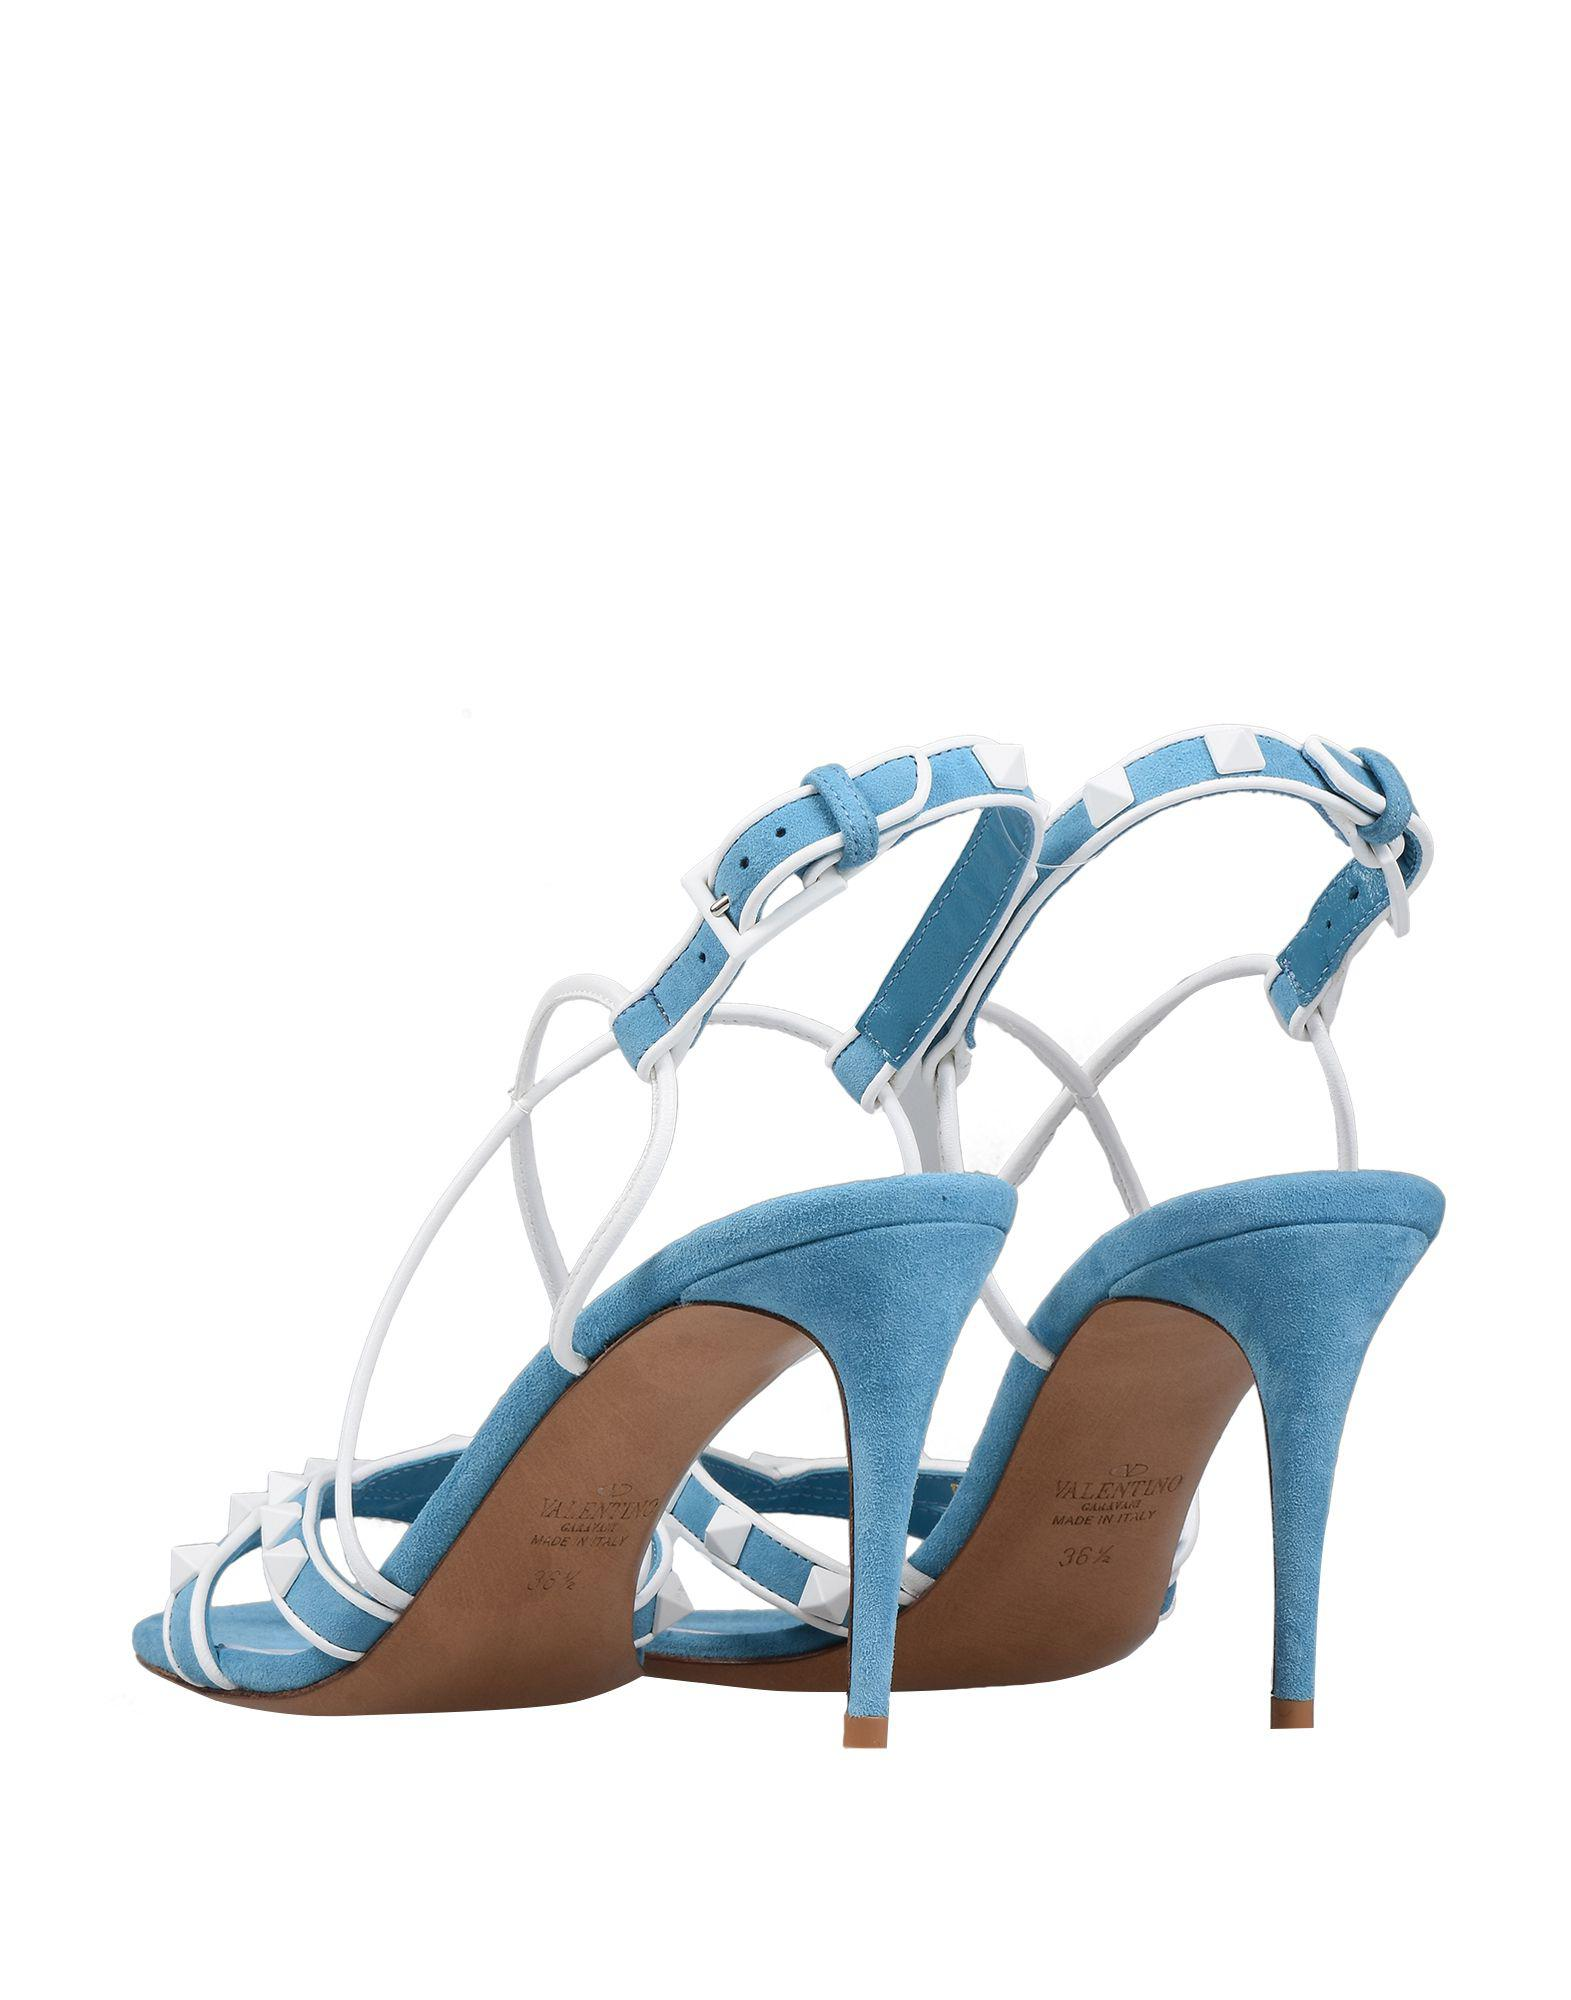 adb88937571d Lyst - Valentino Sandals in Blue